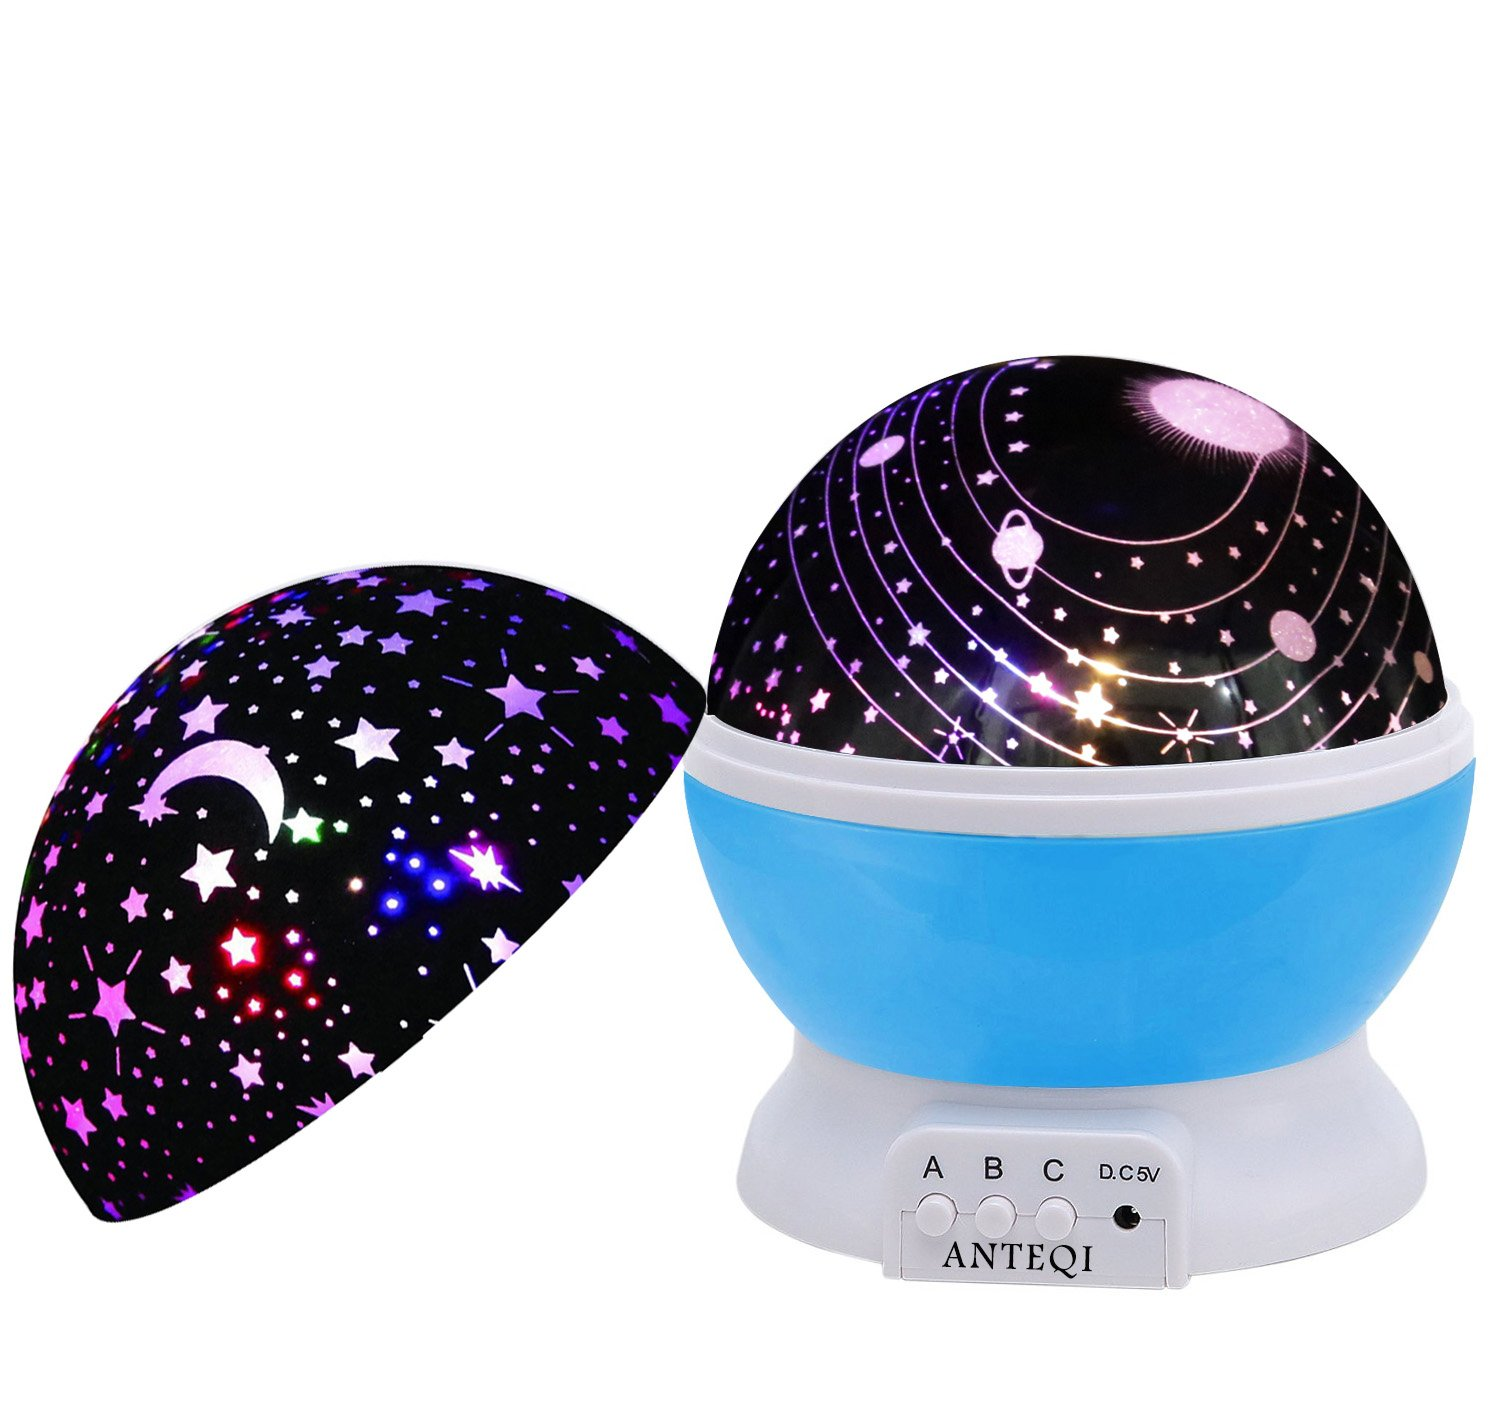 Amazon.com : Night Light Kids Lamp, Romantic Rotating Sky Moon U0026 Cosmos  Cover Projector Night Lighting For Children Adults Bedroom, Mood/Decorative  Light, ...